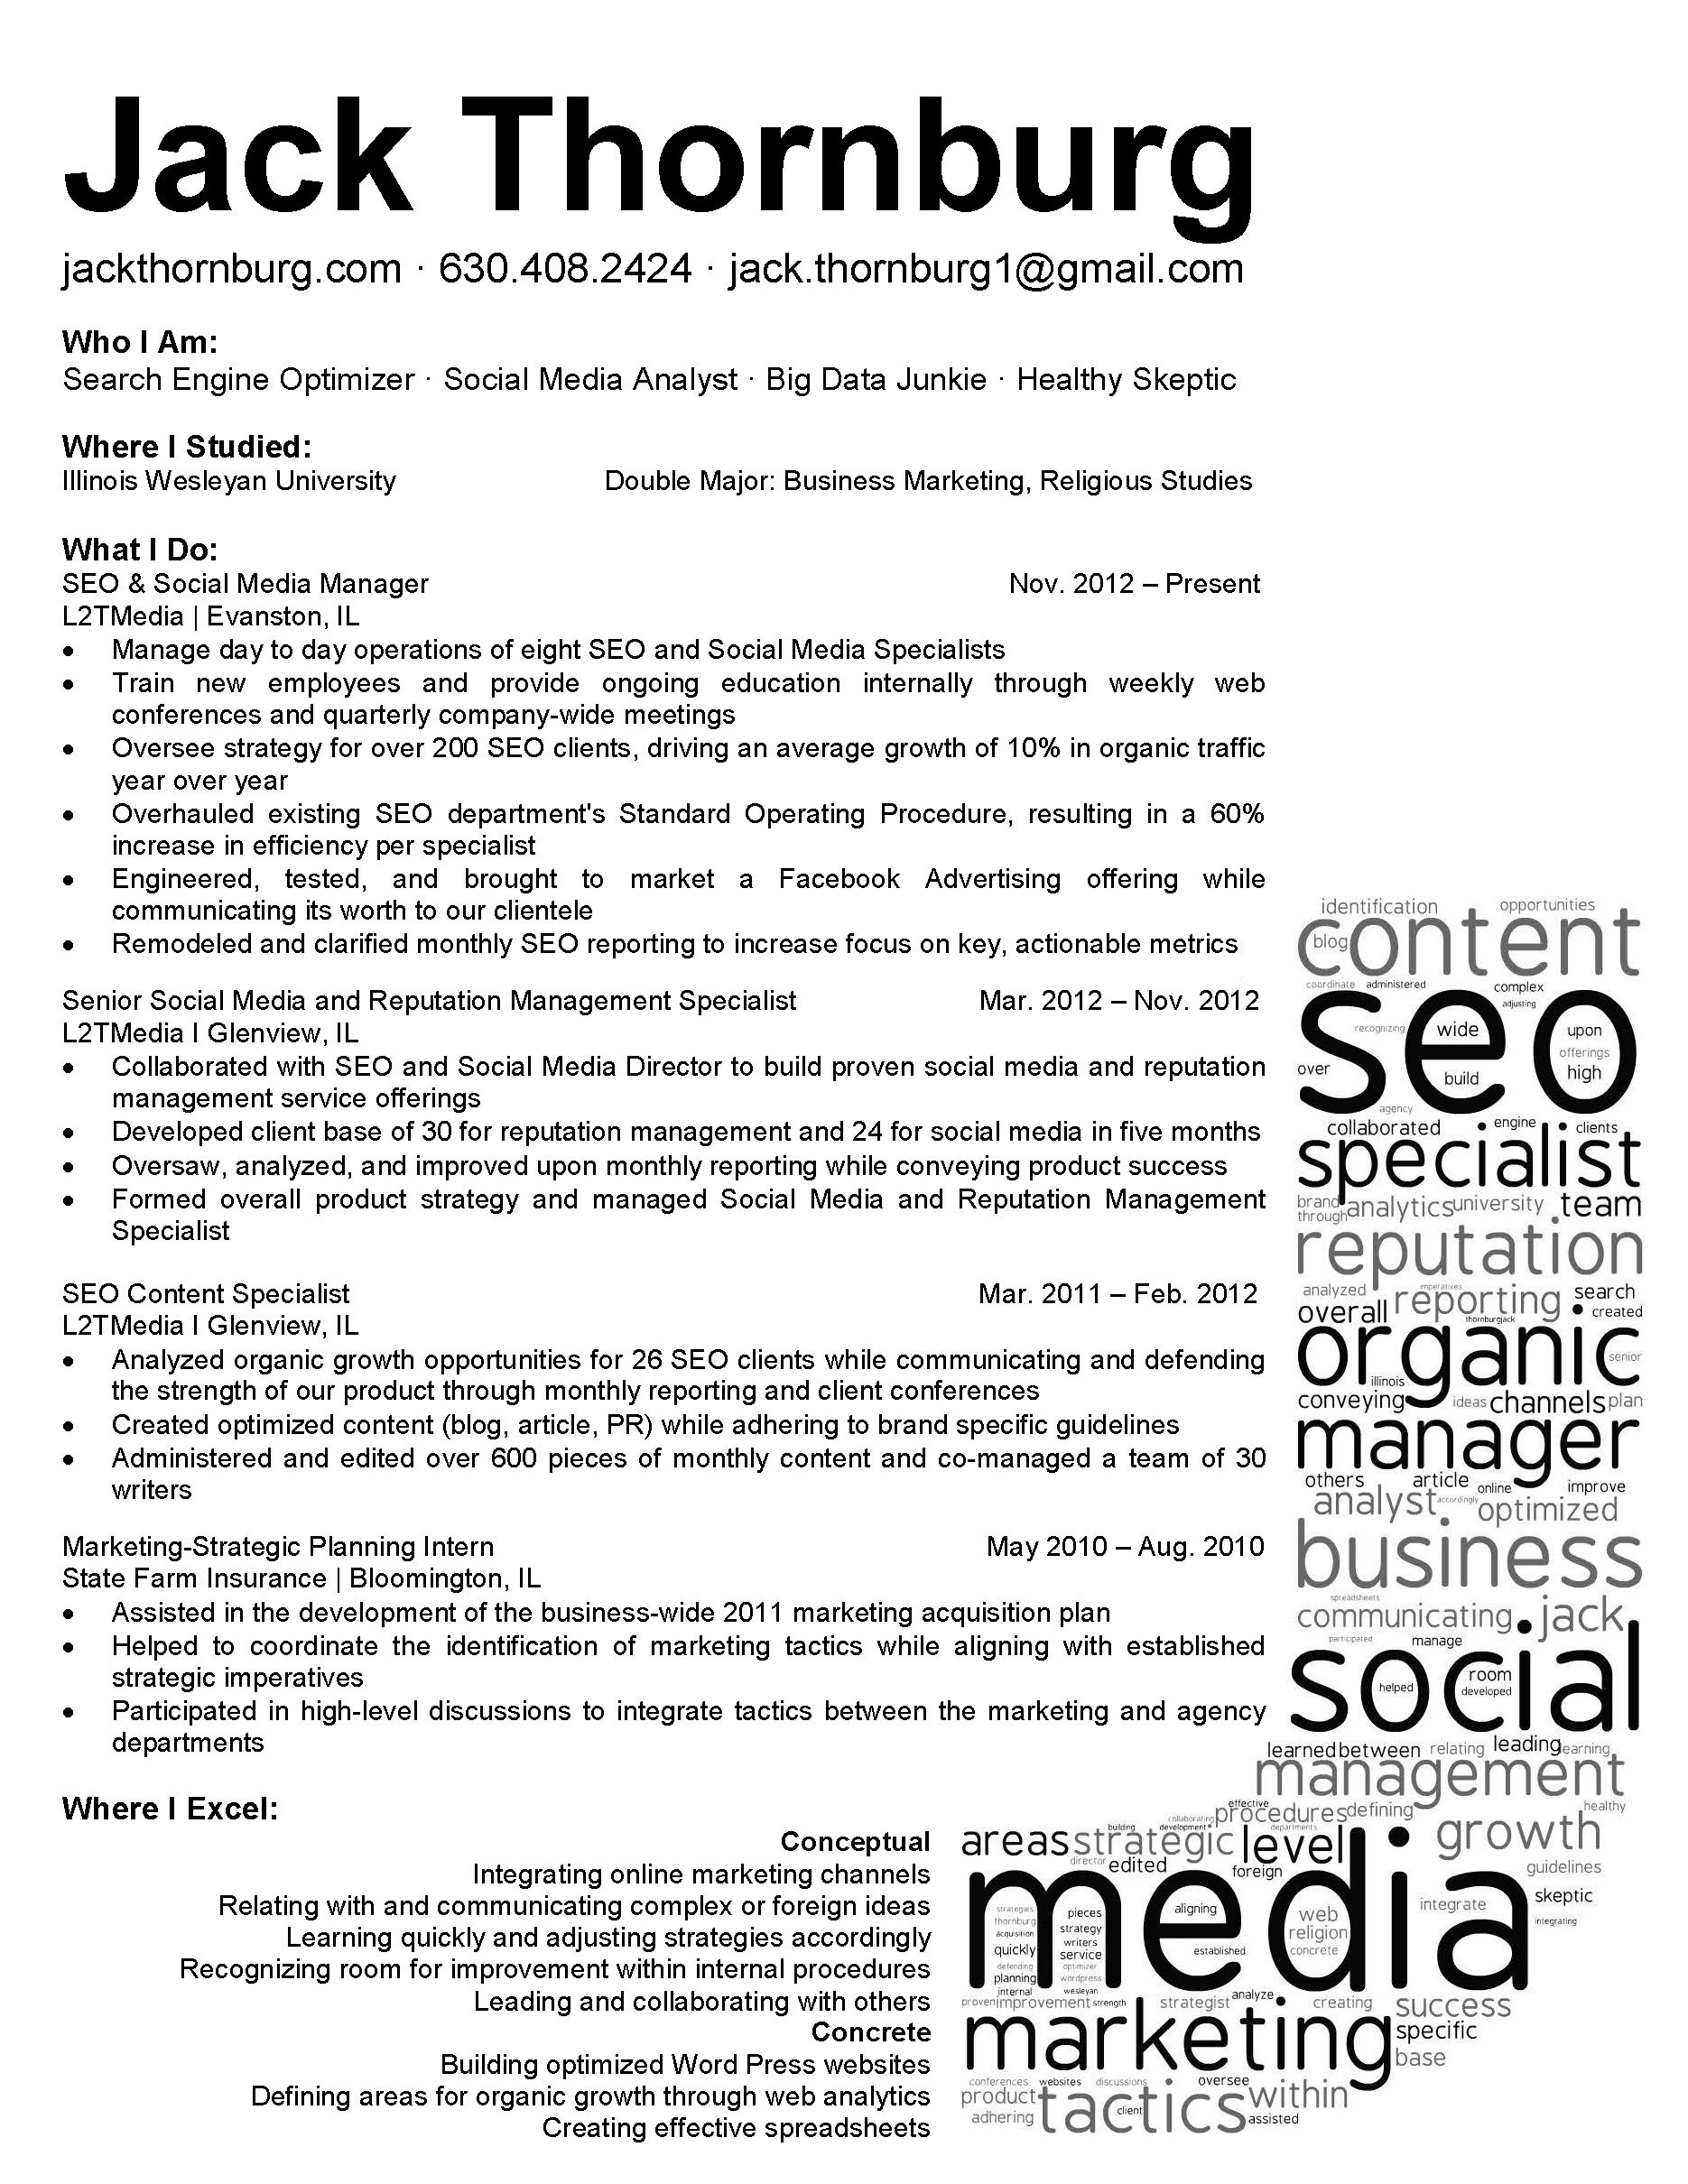 Office Assistant Duties Resume Pdf Seo Manager Resume Best Sample Free Examples Compare Writing  General Labor Resume Objective Word with See Resume Word Seo Manager Resume Best Sample Free Examples Compare Writing Services Find  With Regard Best Resume Template Word Word